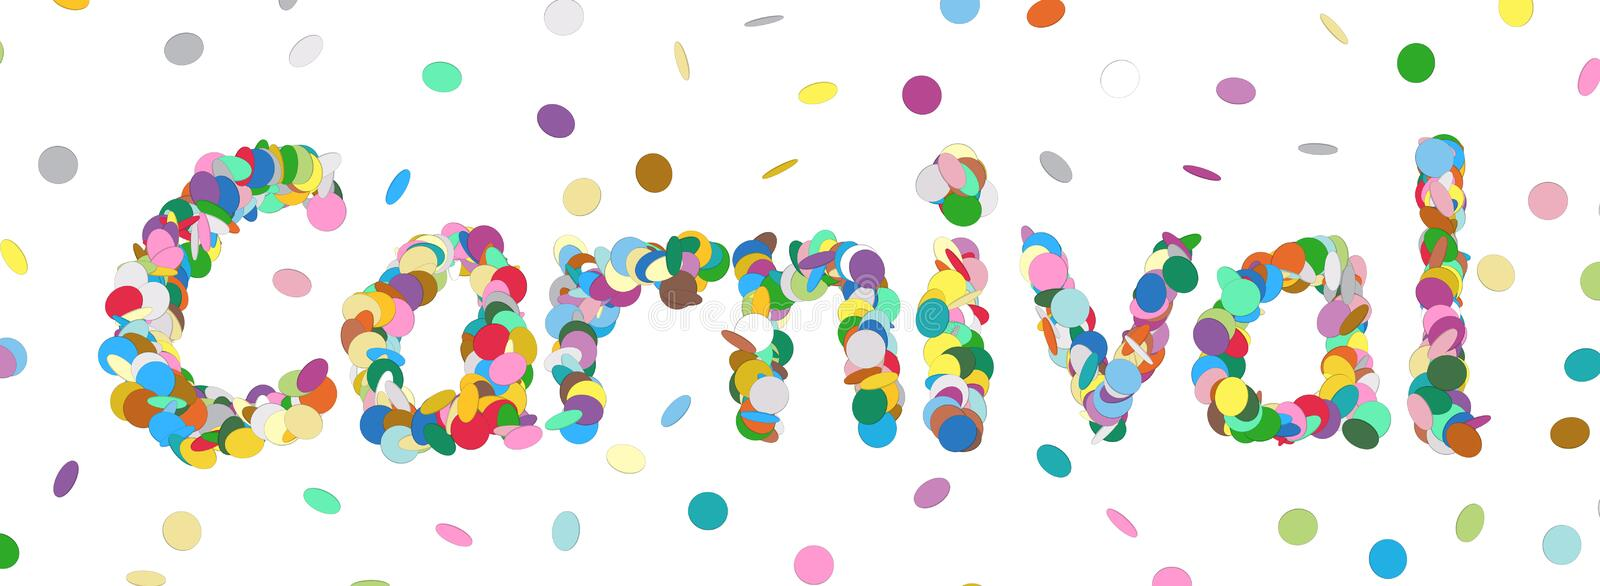 Carnival - Written with Colorful Confetti. Vector Panorama Illustration Isolated on White Background! stock illustration